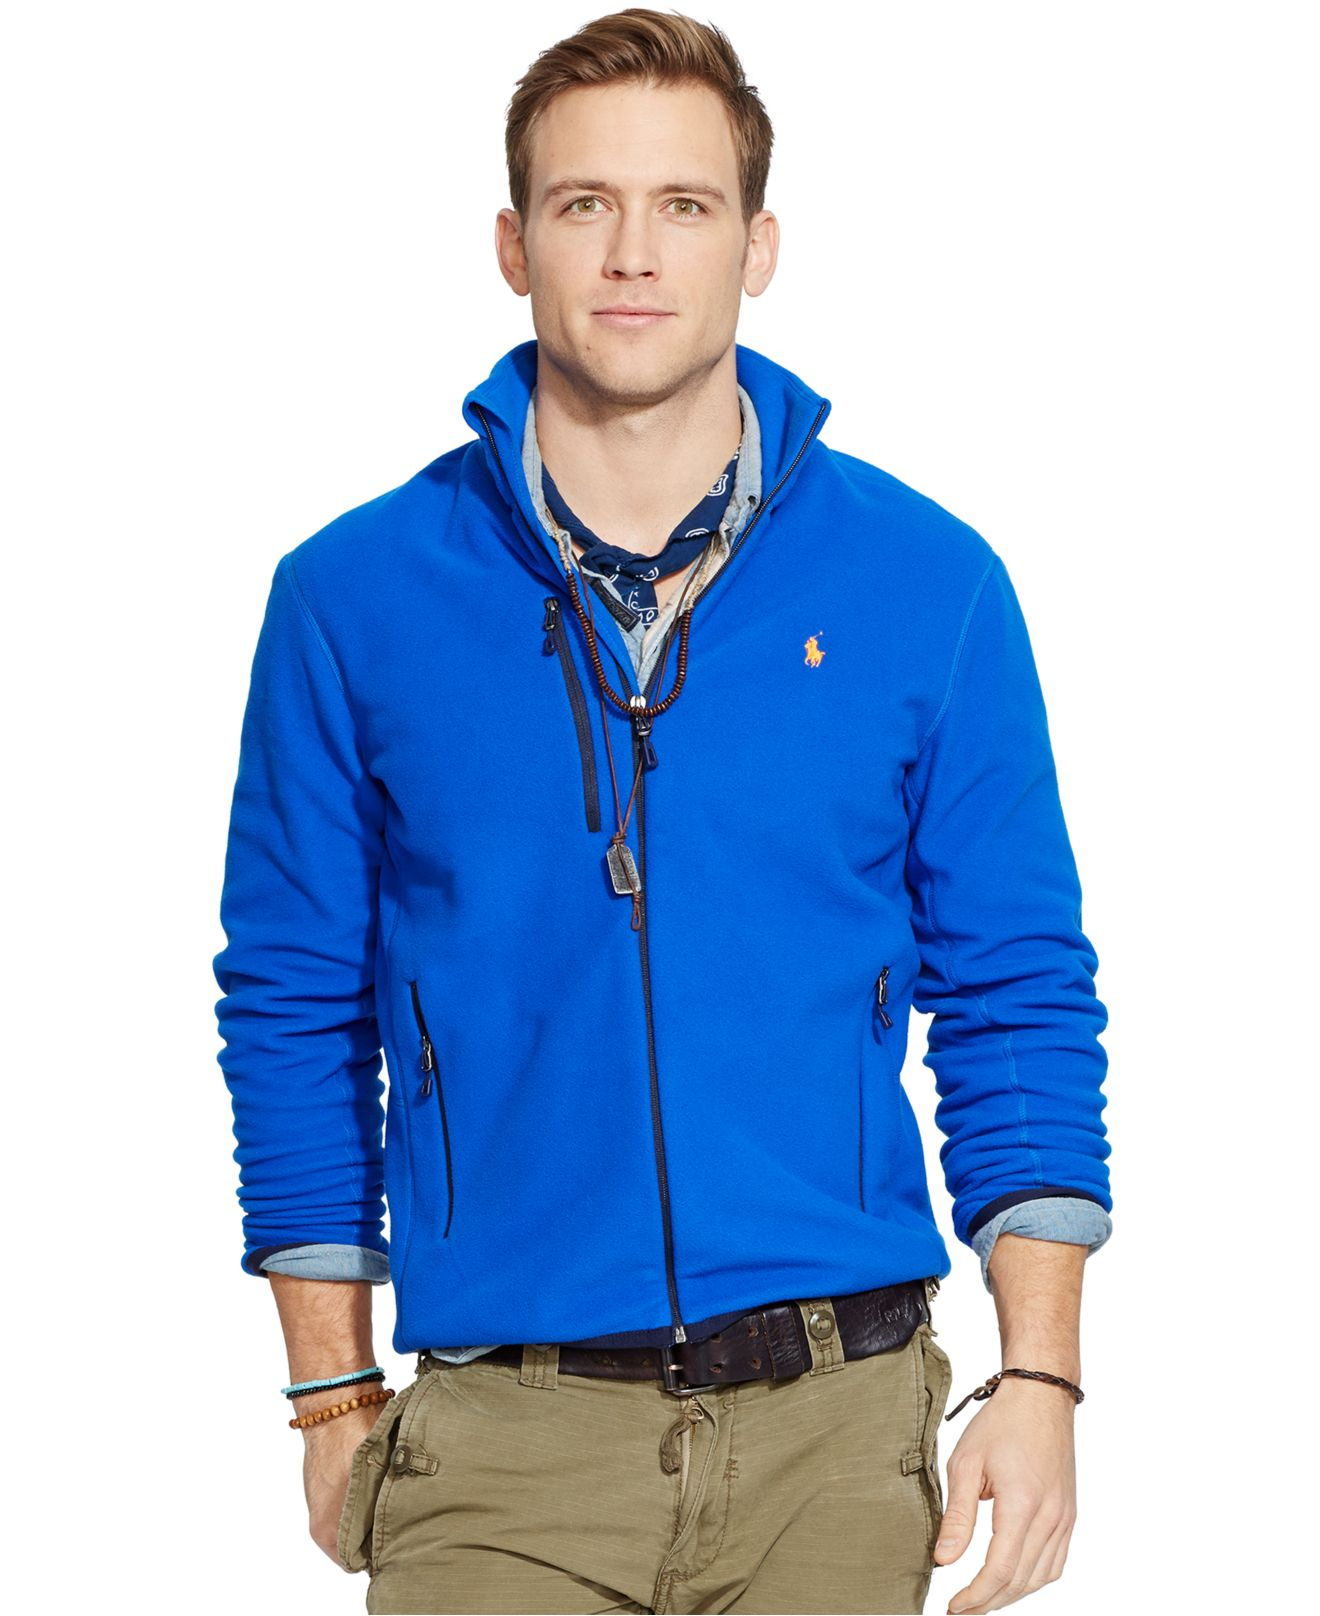 polo ralph lauren fleece mockneck jacket in blue for men lyst. Black Bedroom Furniture Sets. Home Design Ideas